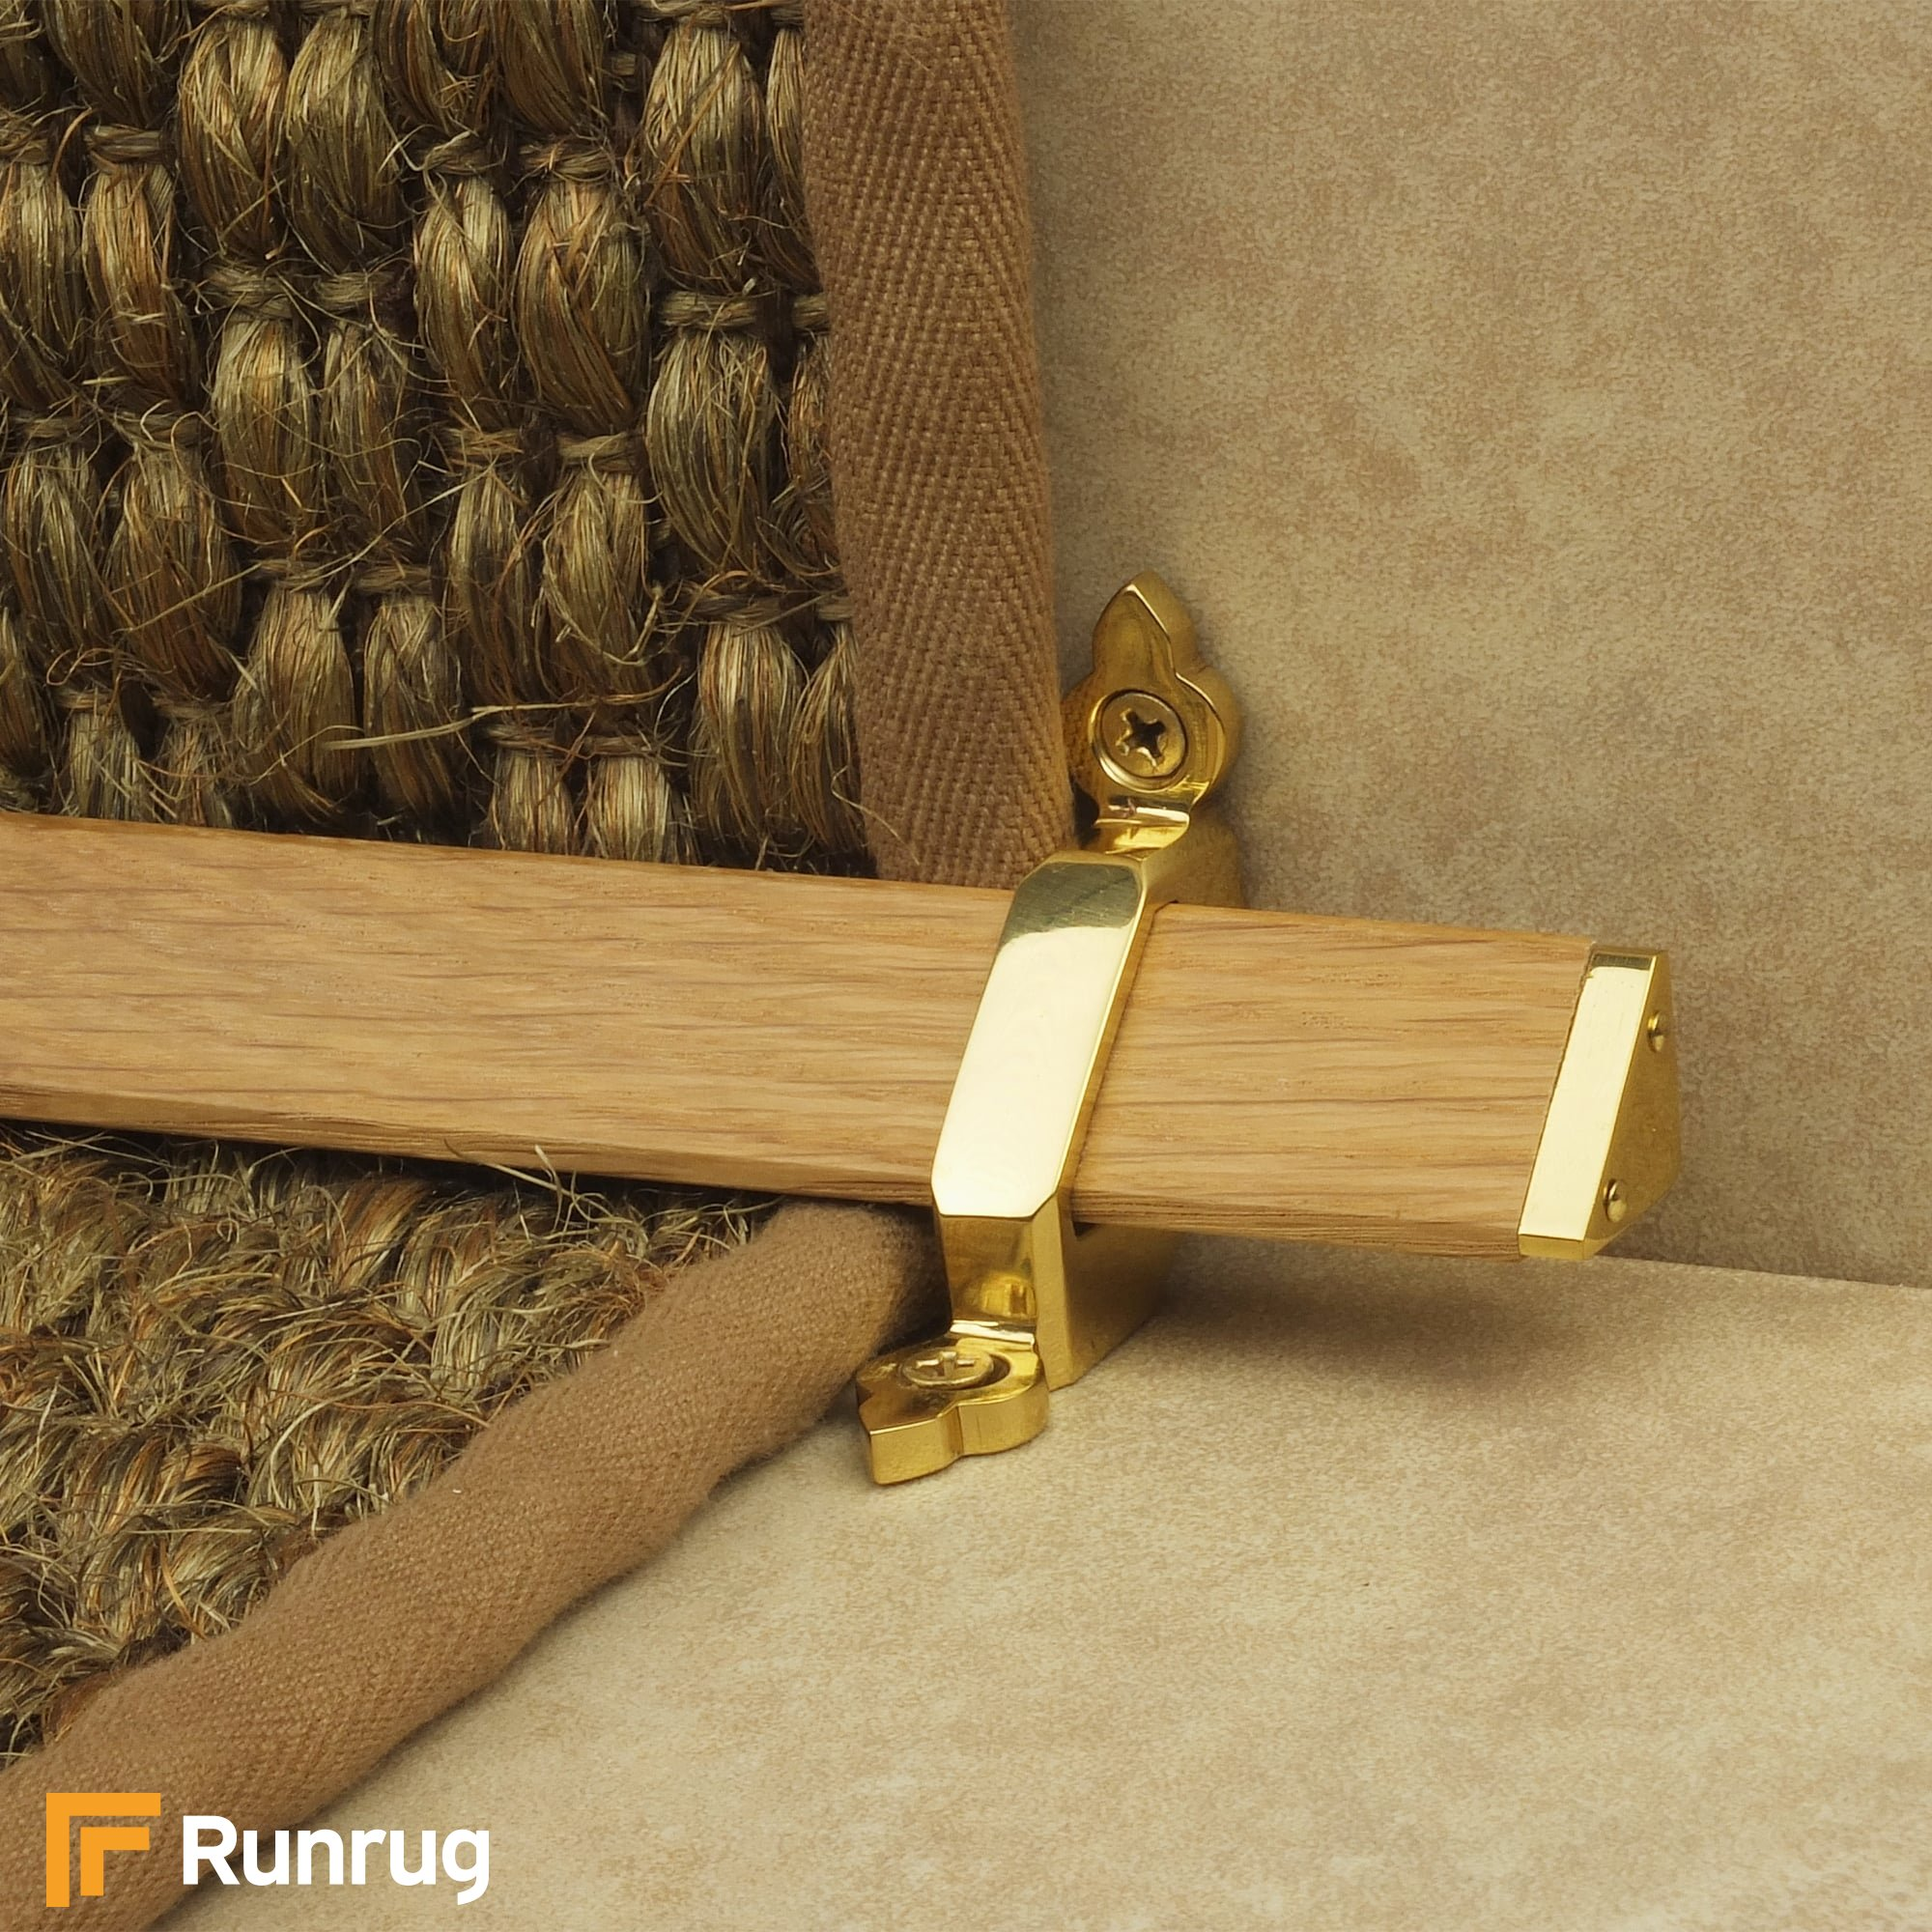 Brass Carpet Stair Rods   Tudor Brass Finish Light Wood Stair Carpet Runner  Rods